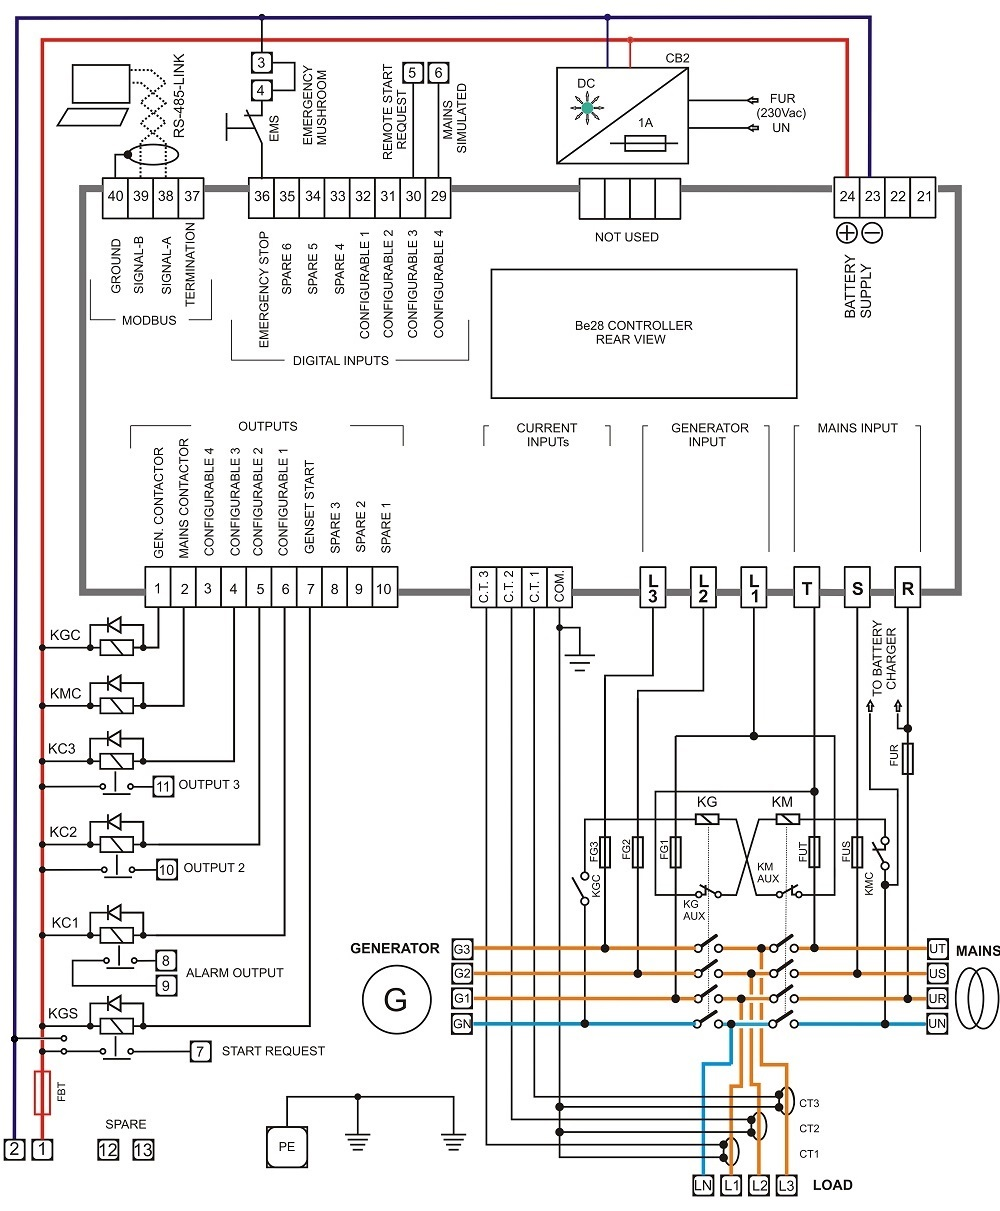 Electrical Panel Board Wiring Diagram Download Circuit Diagrams For Generator Free Ats Simple Postats Third Level